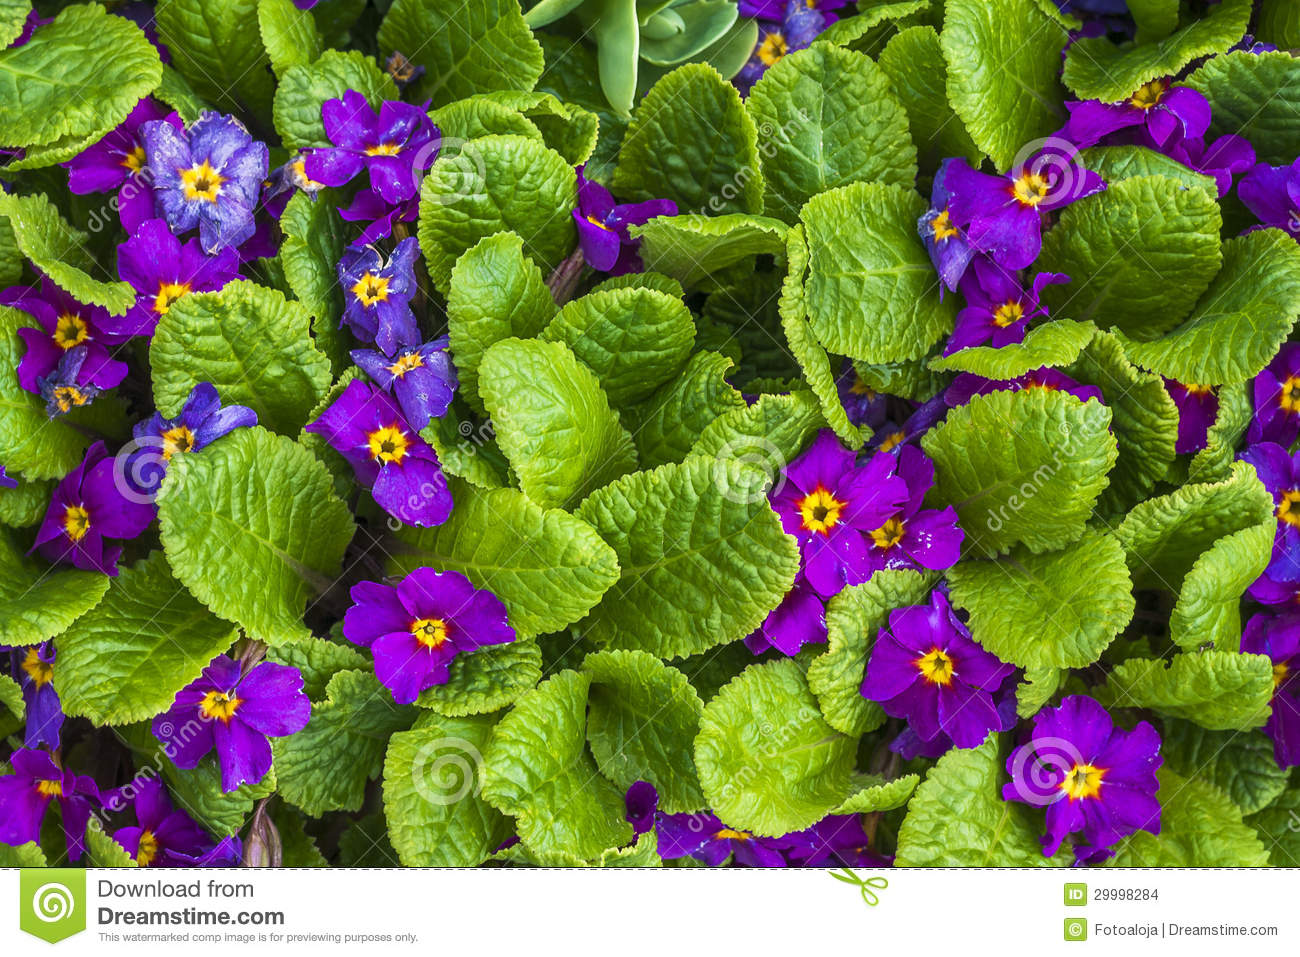 Flower floral purple tiny spring plants nature stock photo image royalty free stock photo mightylinksfo Gallery